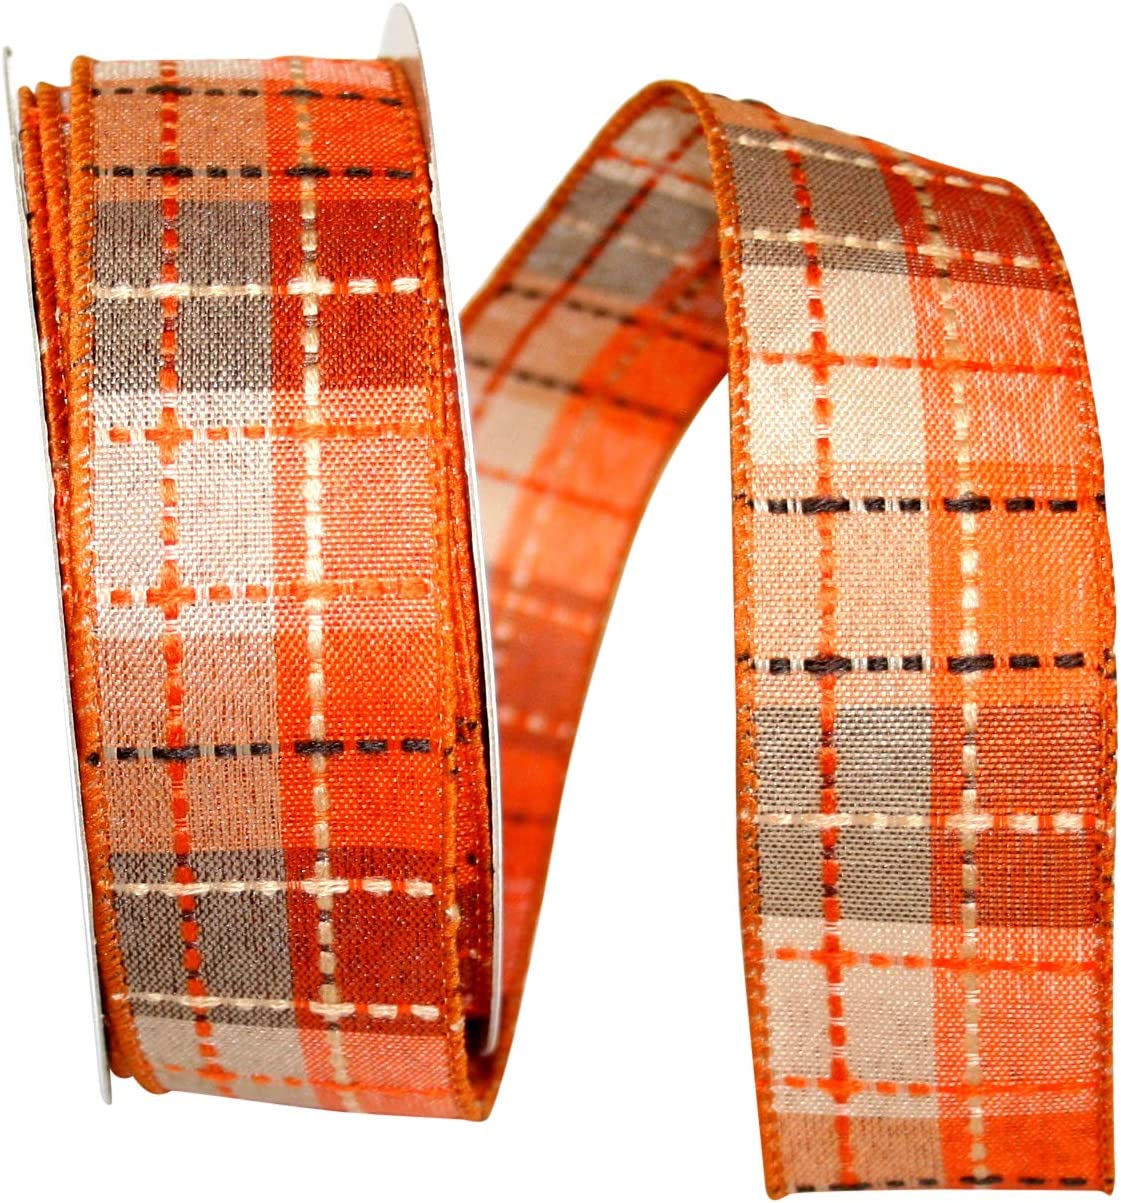 Reliant Ribbon Check Stitch Plaid Field Wired Edge Ribbon 1-1//2 Inch X 20 Yards Multi